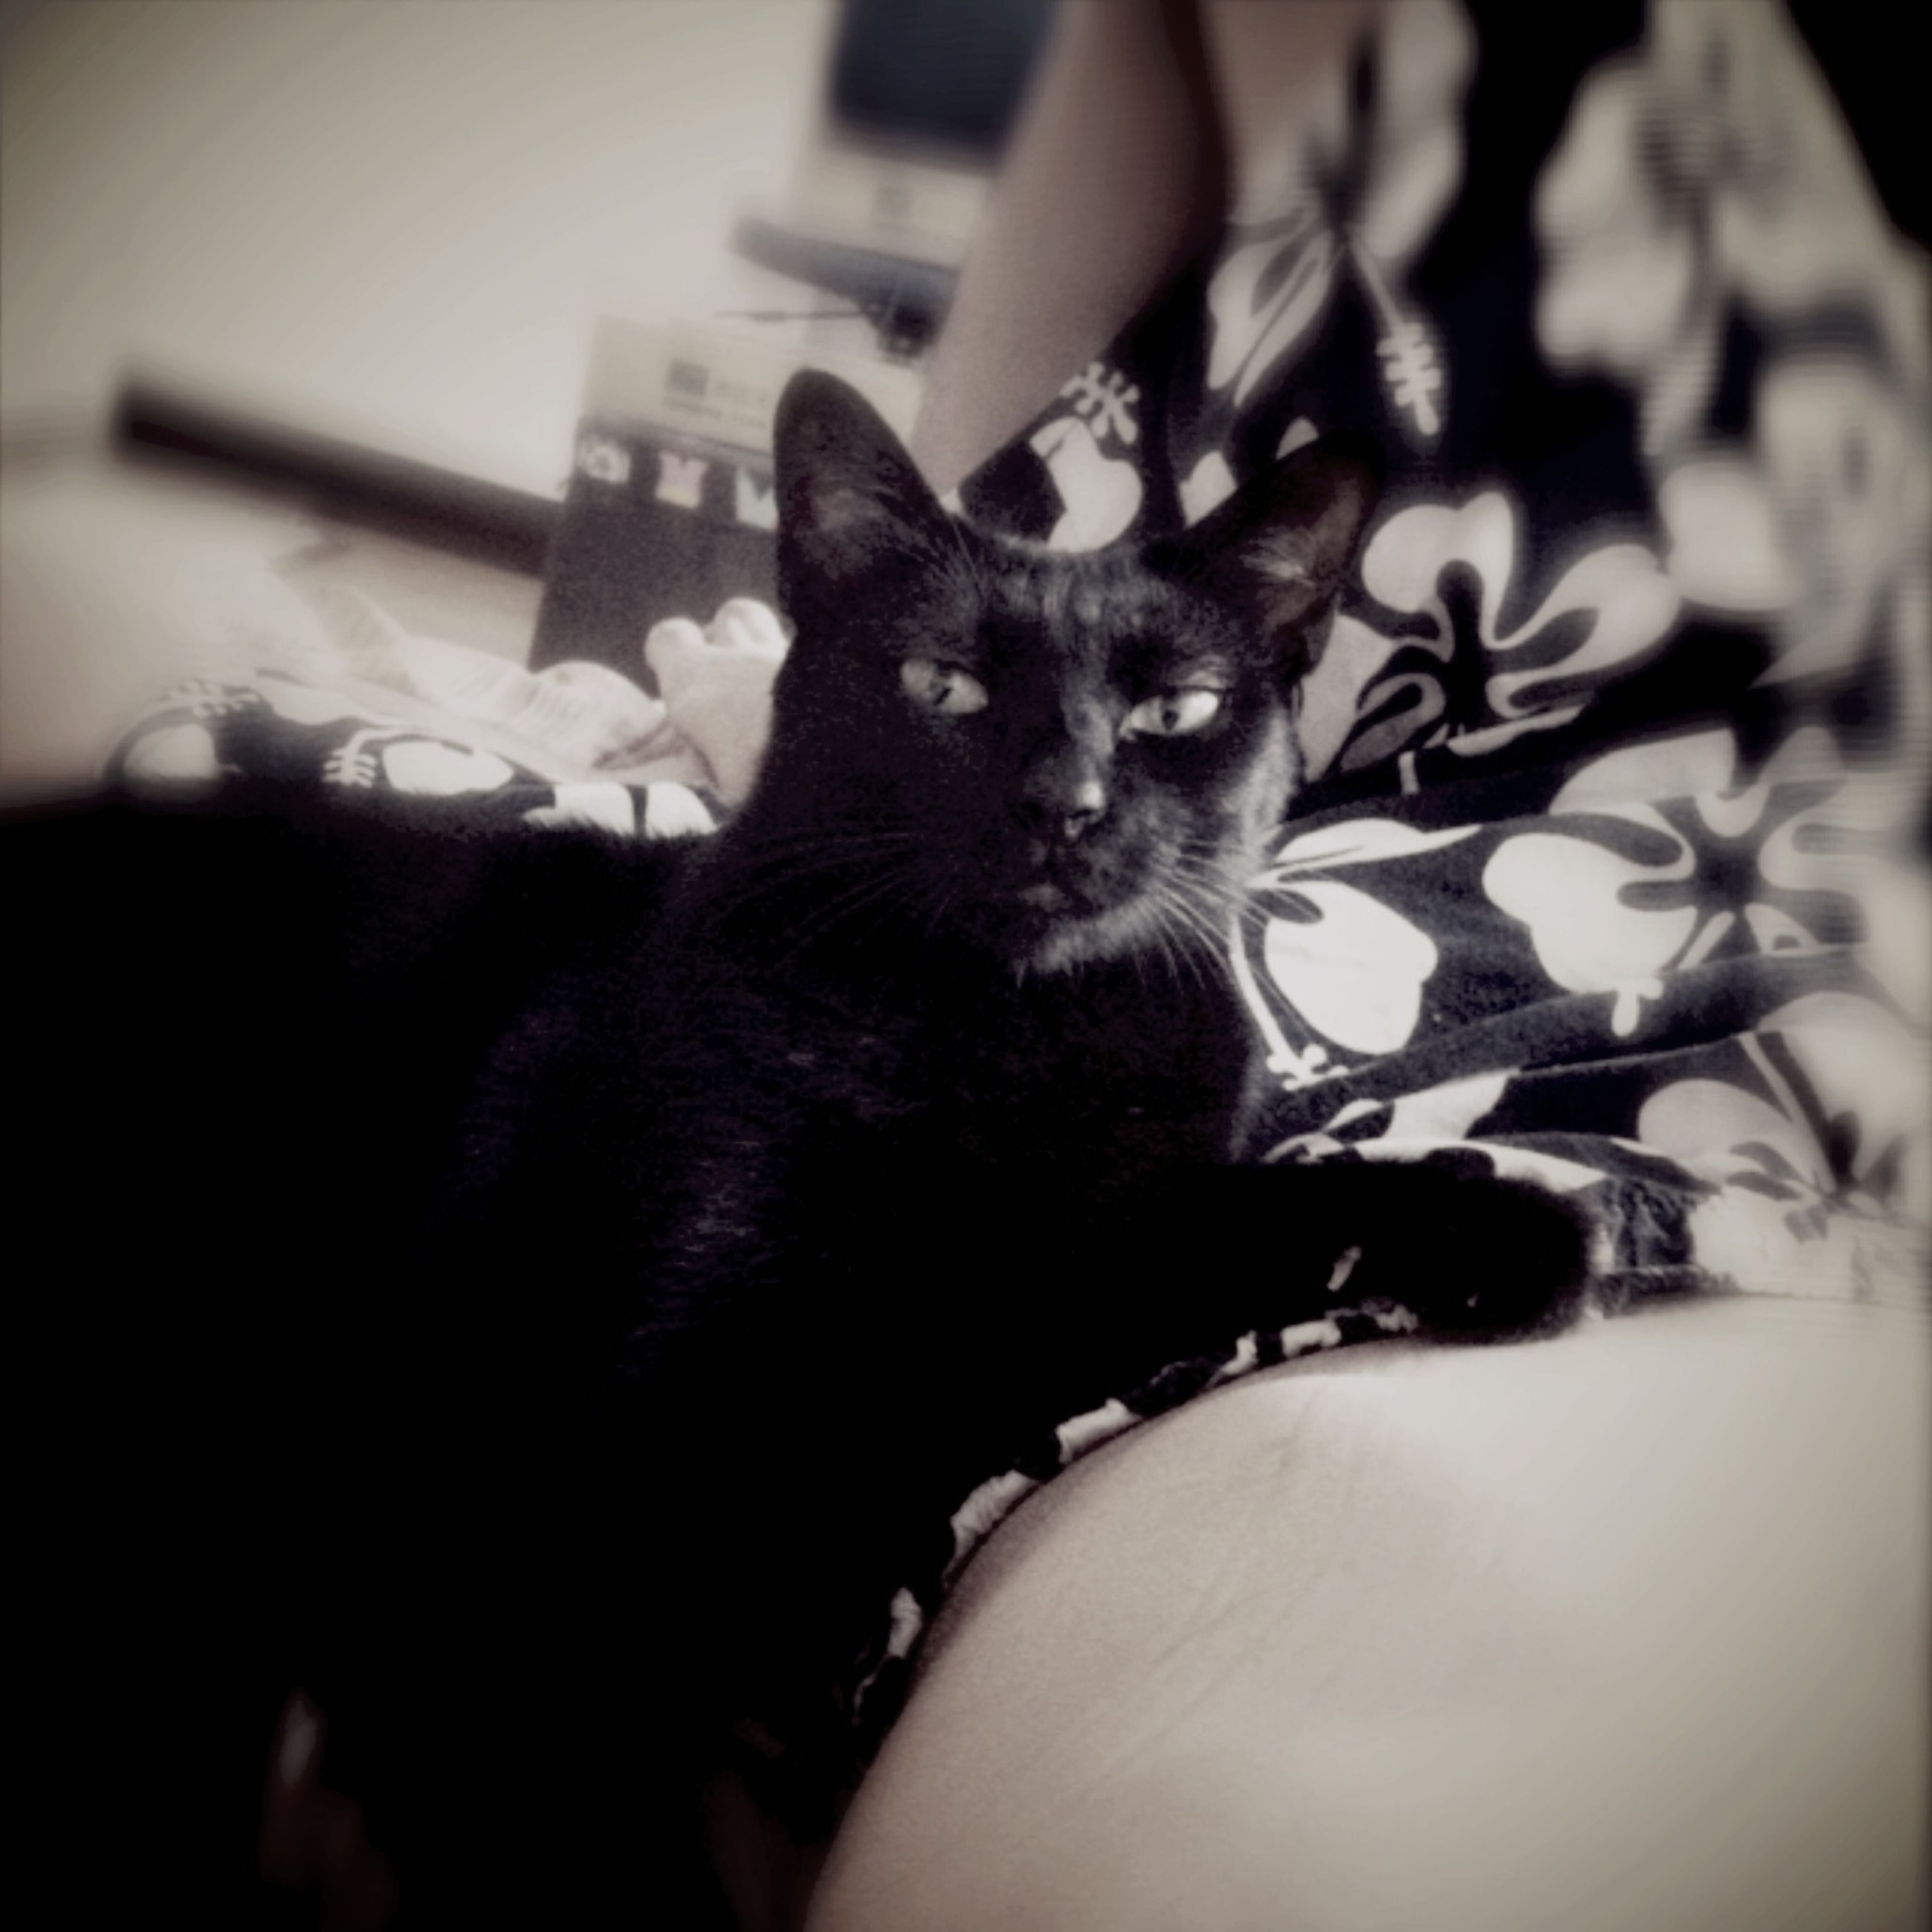 domestic cat, cat, pets, domestic animals, one animal, indoors, feline, animal themes, mammal, whisker, portrait, looking at camera, relaxation, home interior, close-up, black color, staring, sitting, animal head